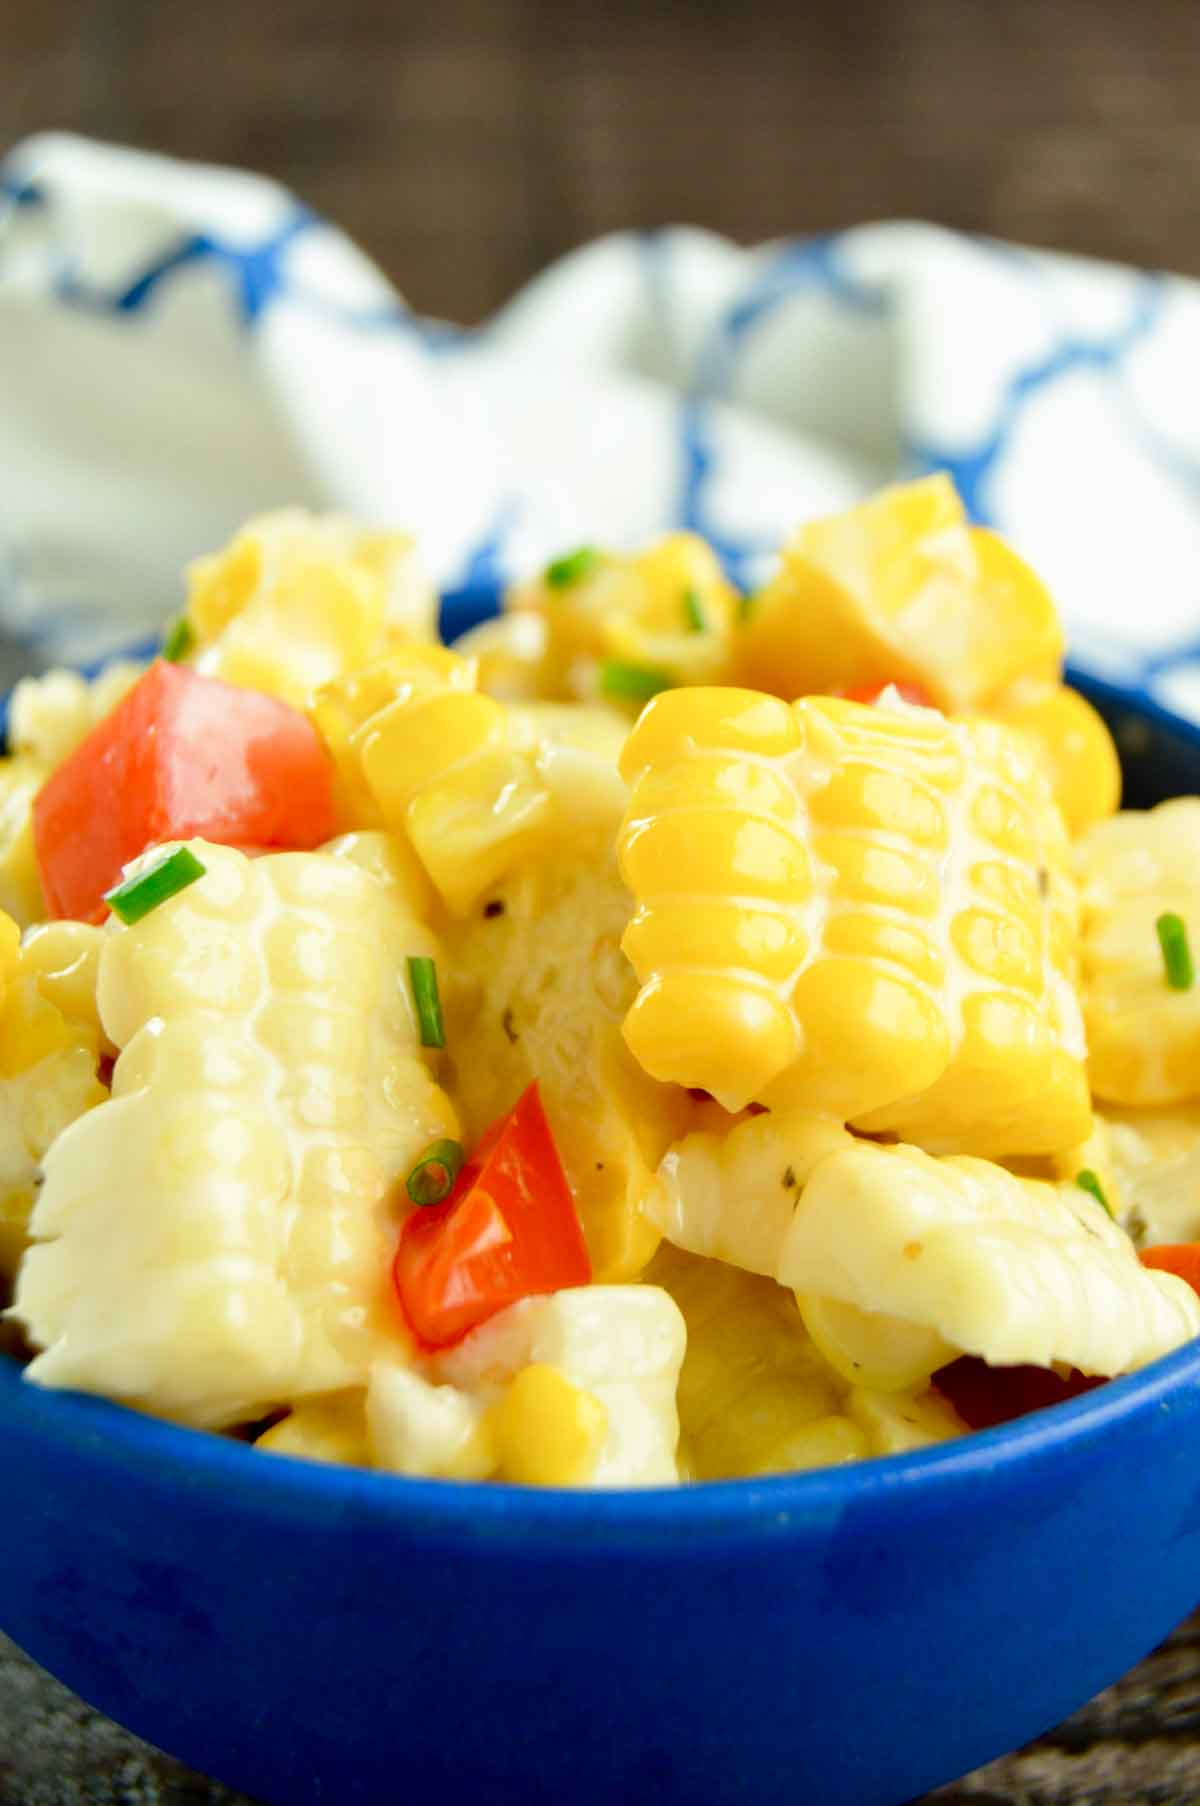 Fresh sweet corn, tomatoes in a blue bowl